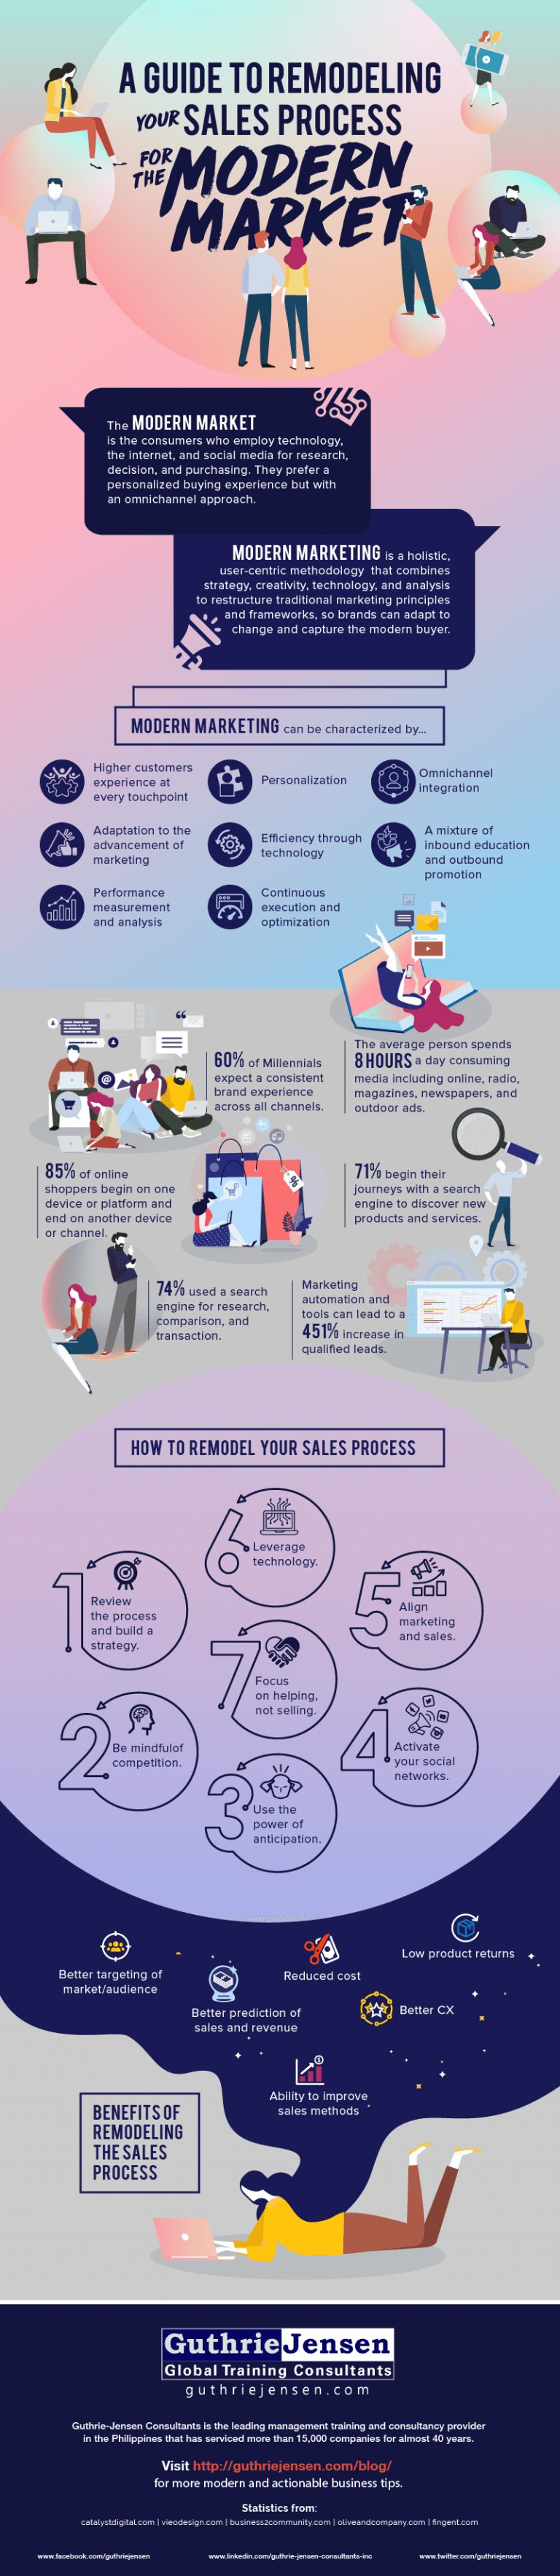 Remodeling Sales Process